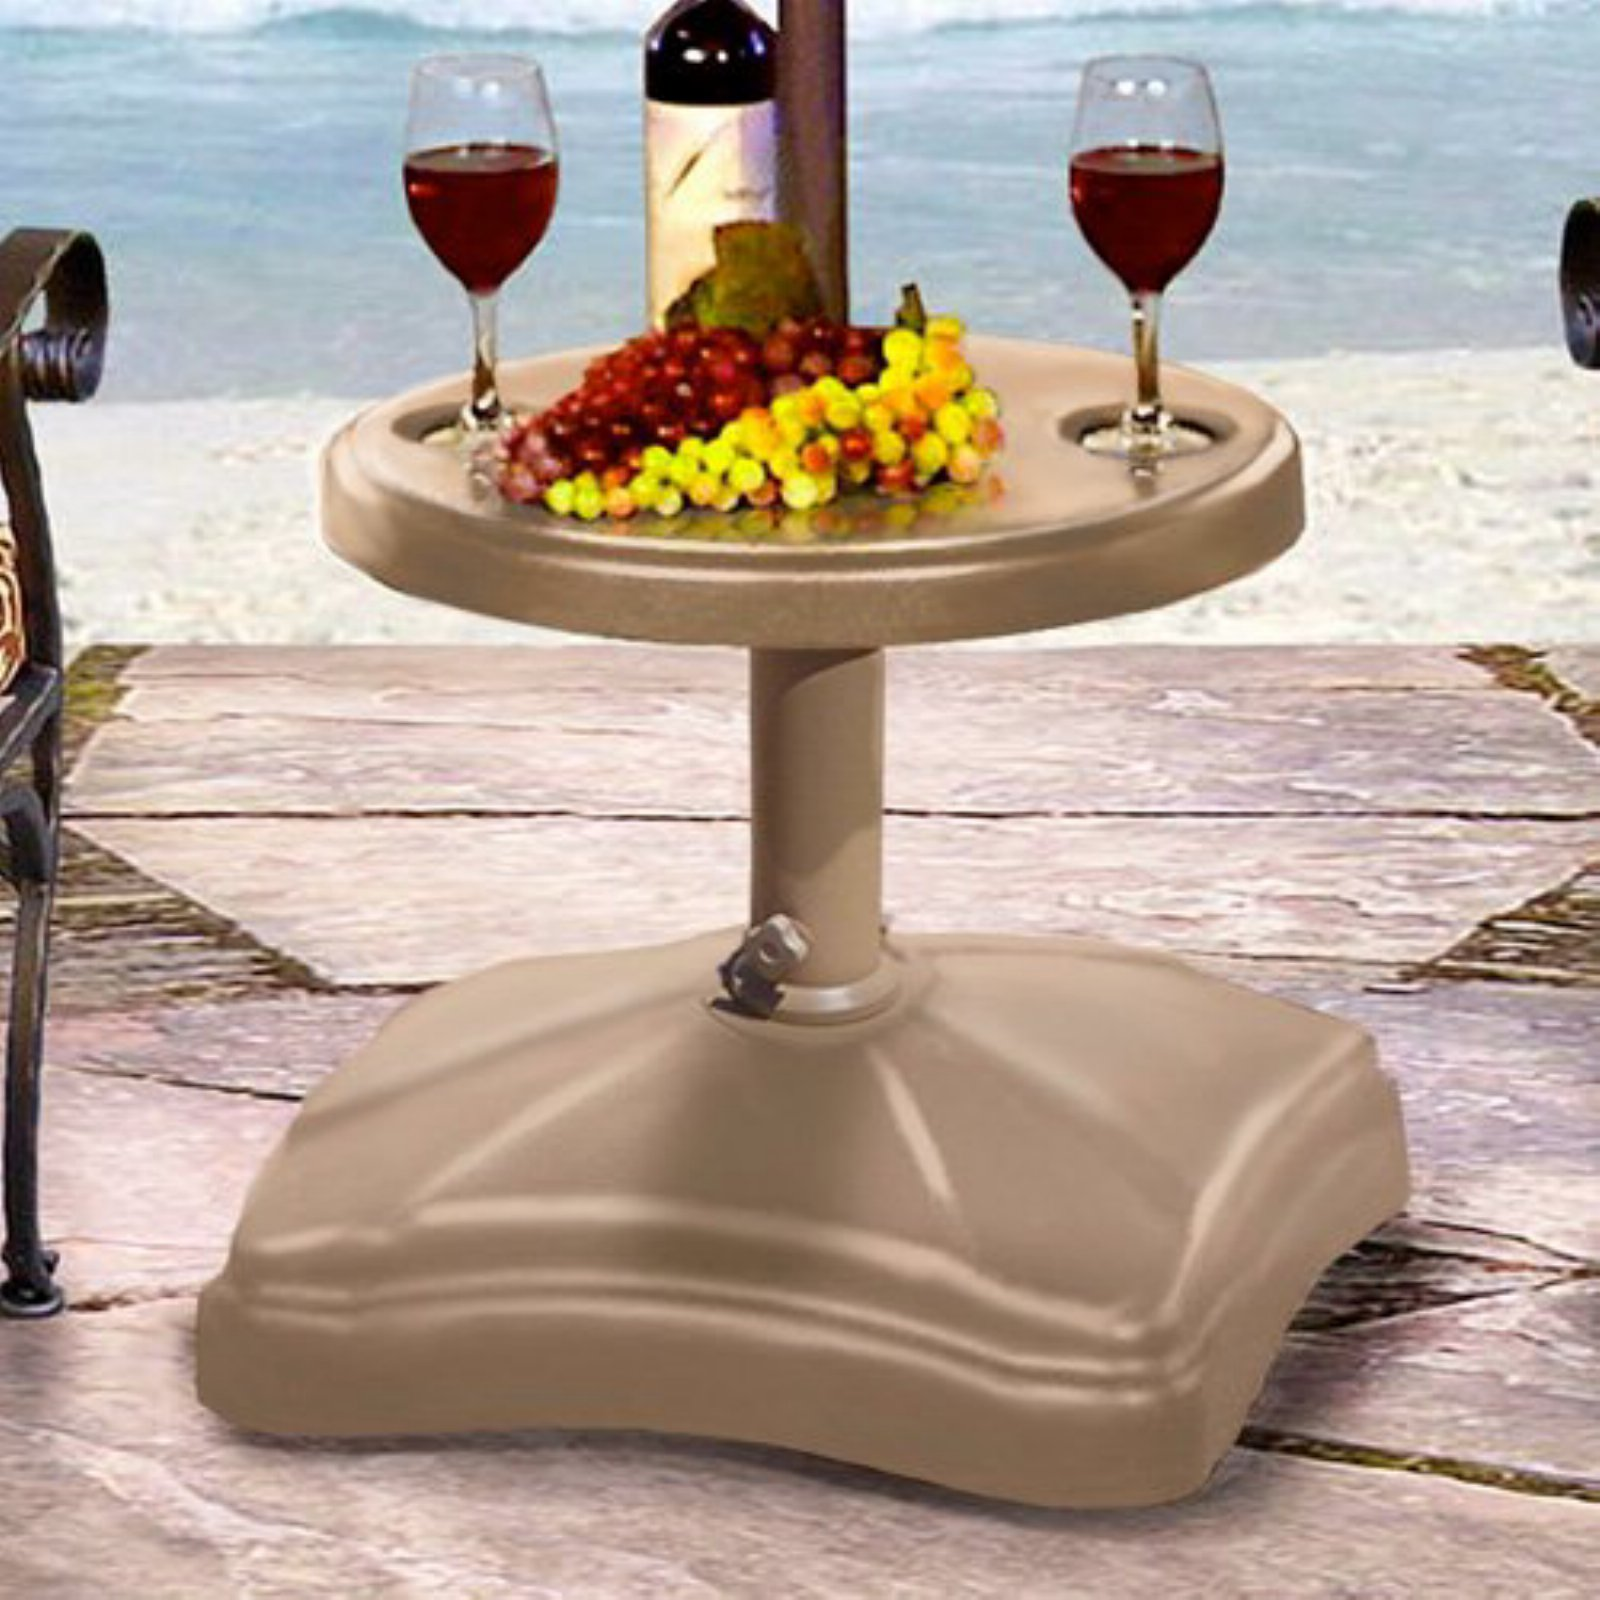 Shademobile Rolling Umbrella Stand and Accessory Table, Sand